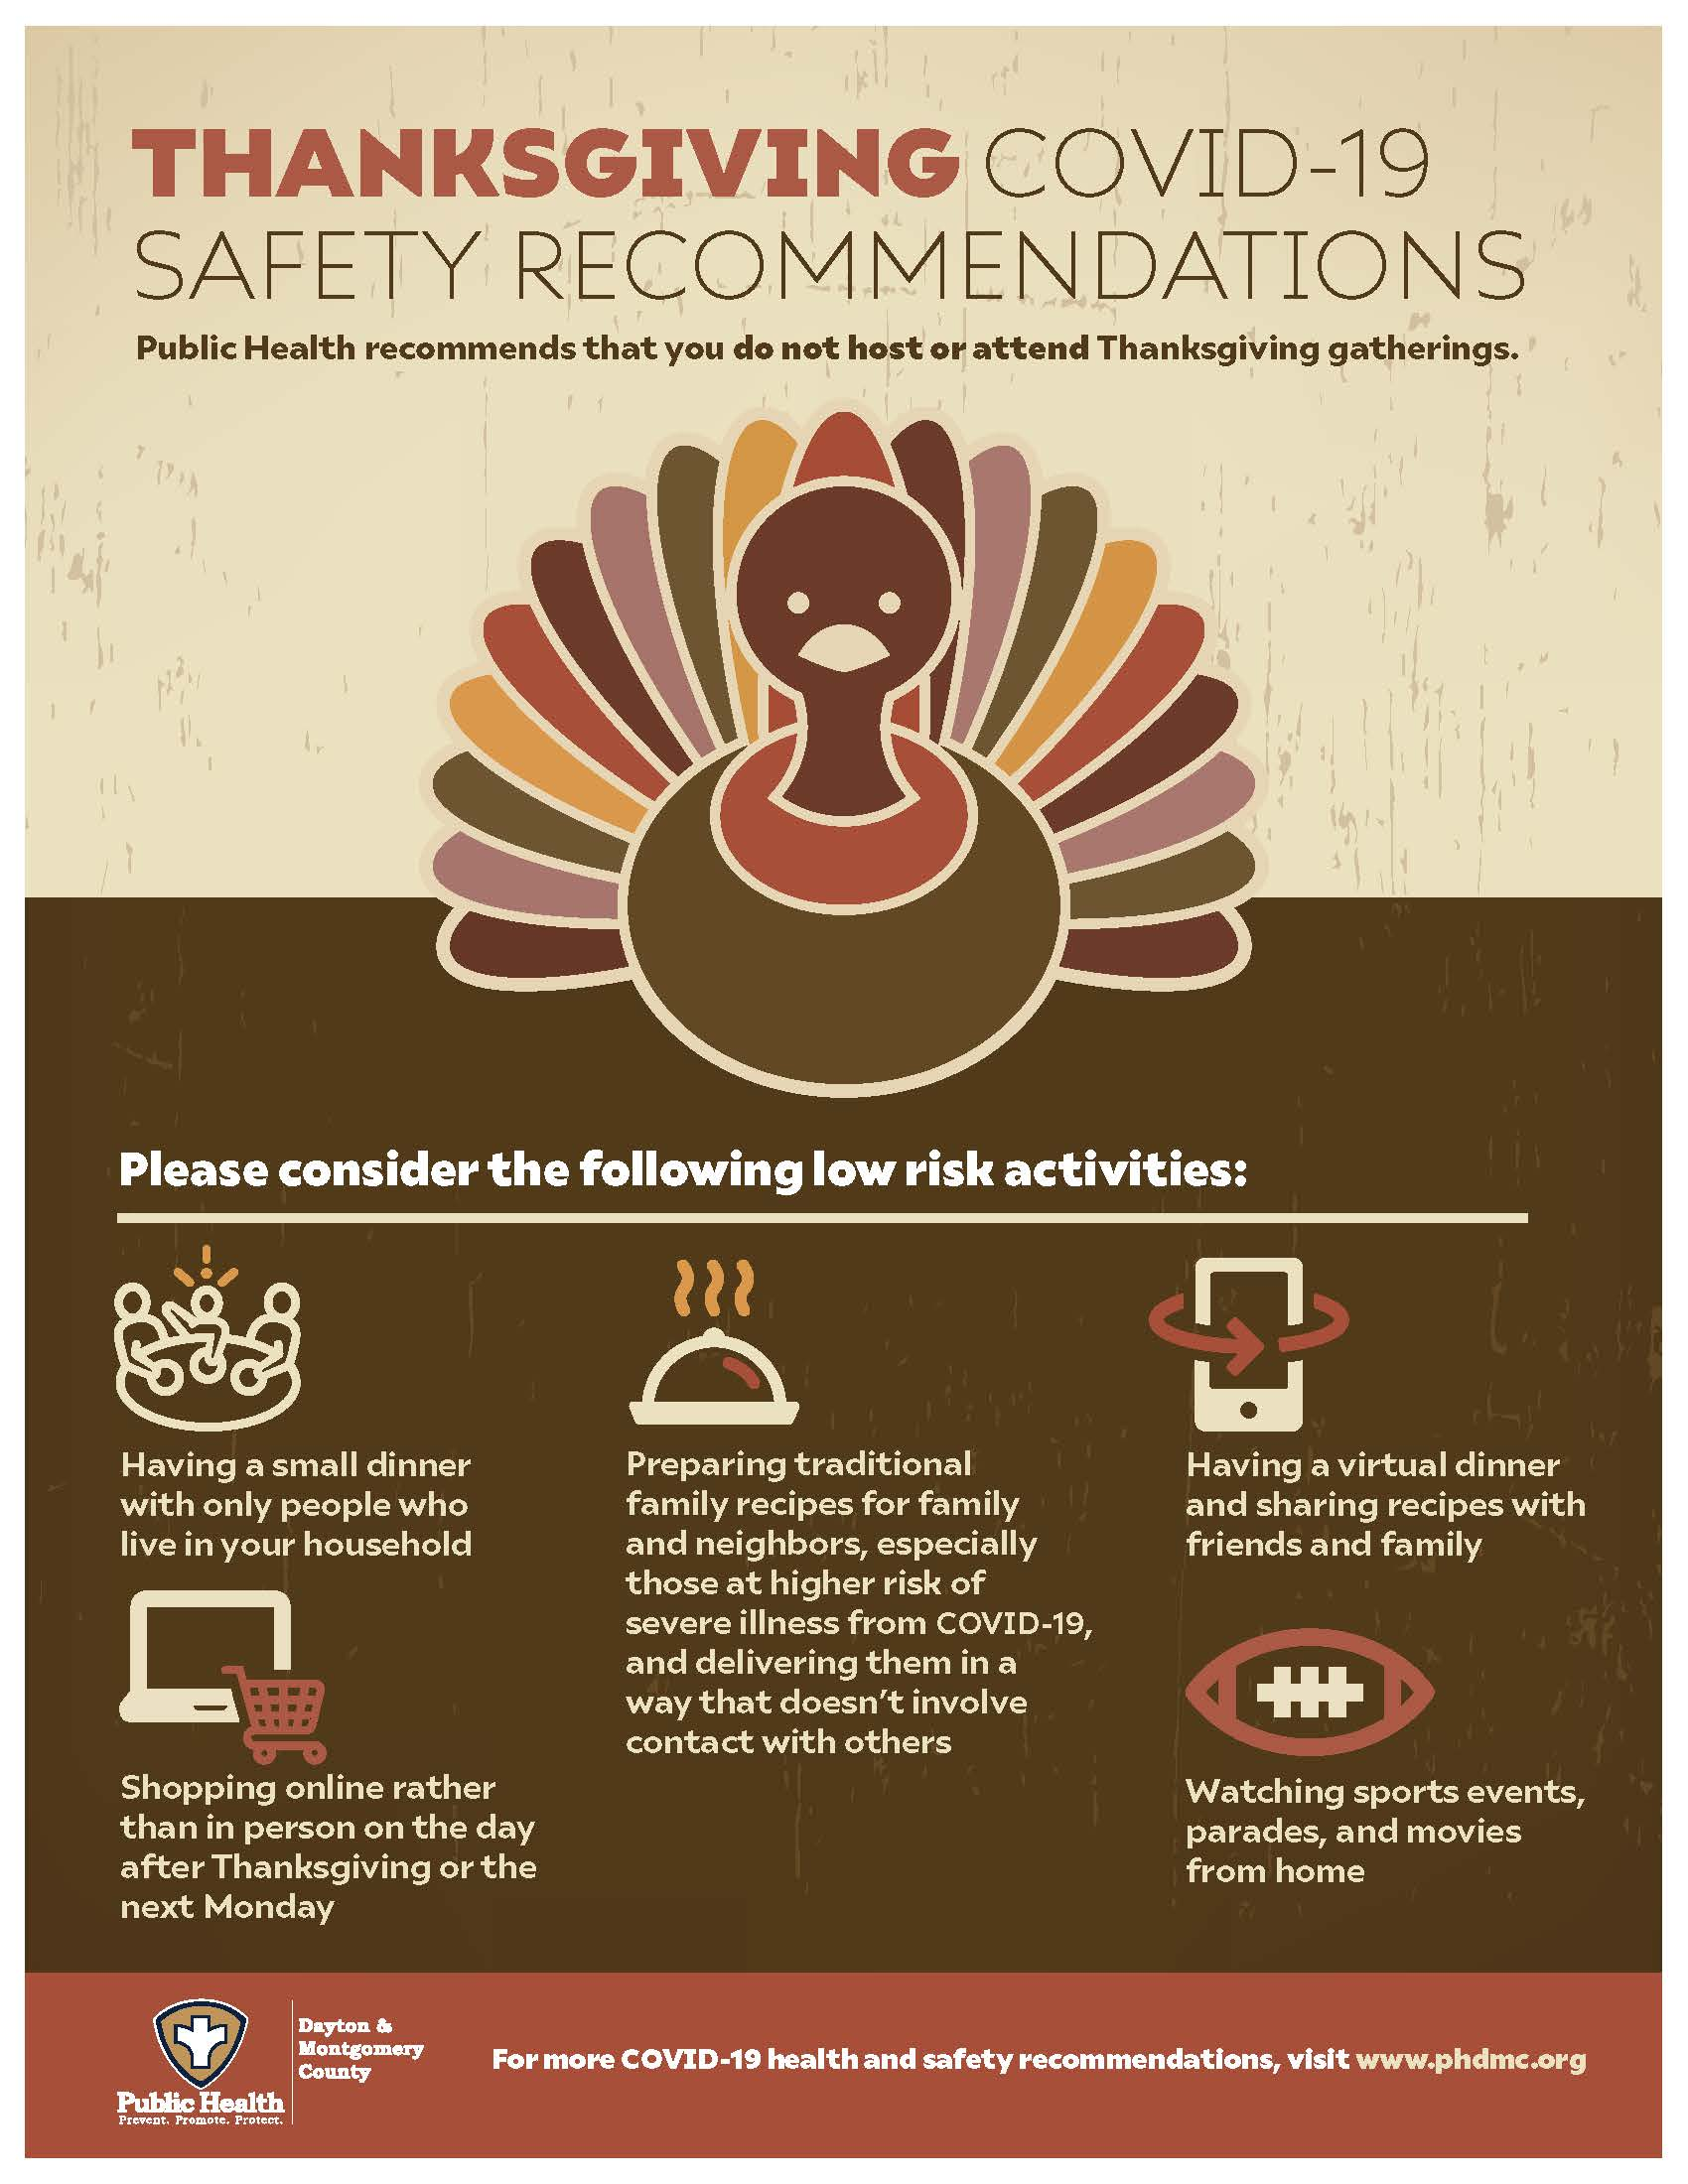 Thanksgiving COVID-19 Safety Recommendation